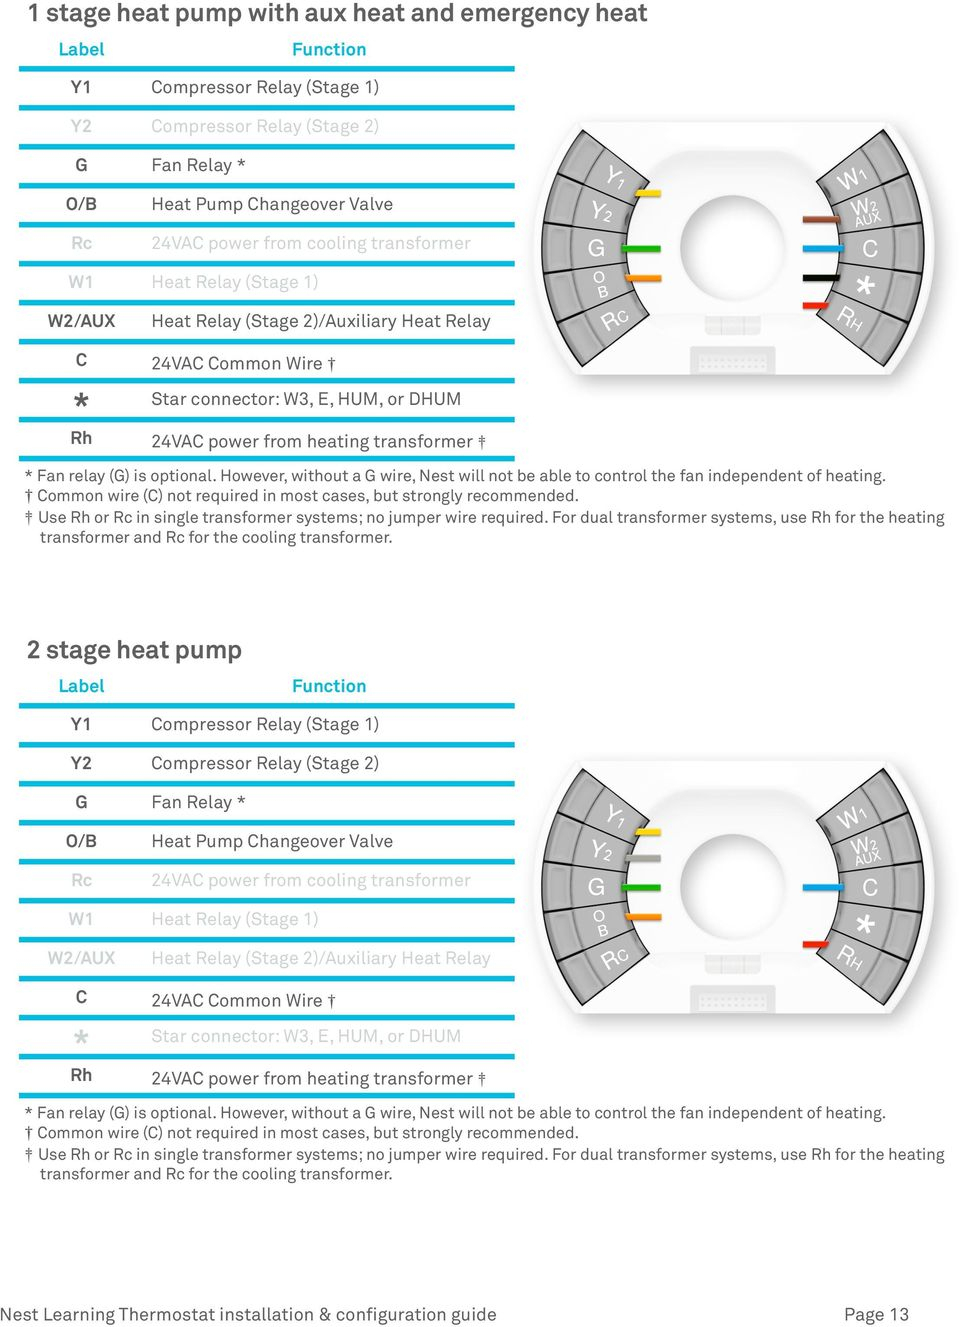 Nest Thermostat Wiring Diagram For Heat Pump | Wiring Diagram - Wiring Diagram For Heat Pumps For Nest